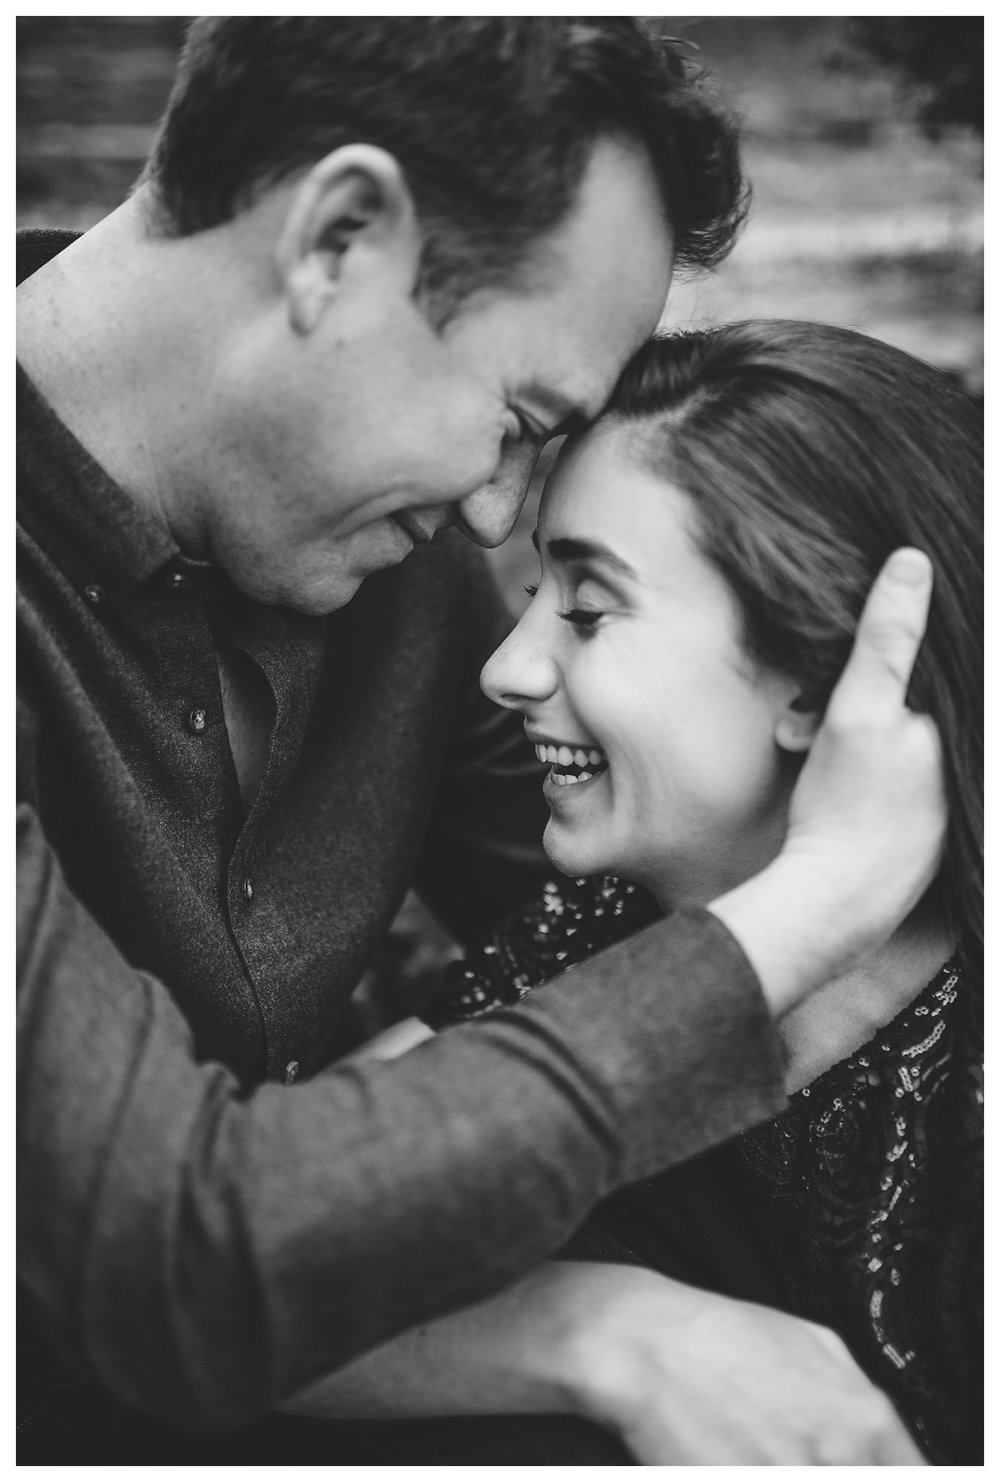 everleigh-photography-cincinnati-wedding-photographer-loveland-castle-cincinnati-engagement-photographer-12